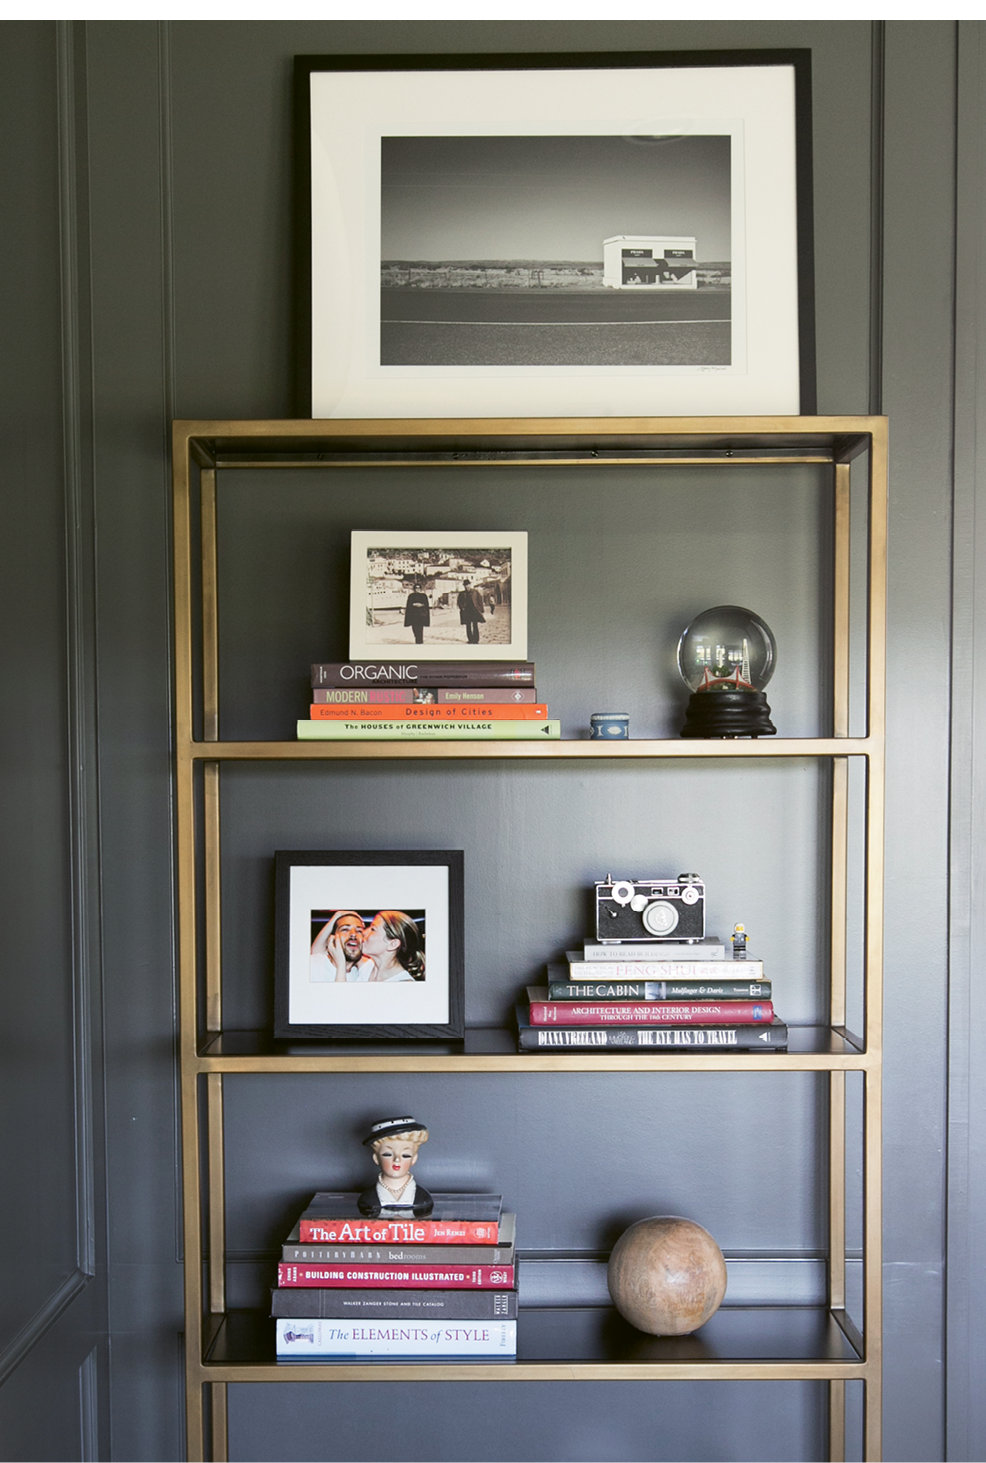 In Melissa's office, gilded shelves display meaningful mementos, such as vintage cameras and Lego figurines that once belonged to her late brother.